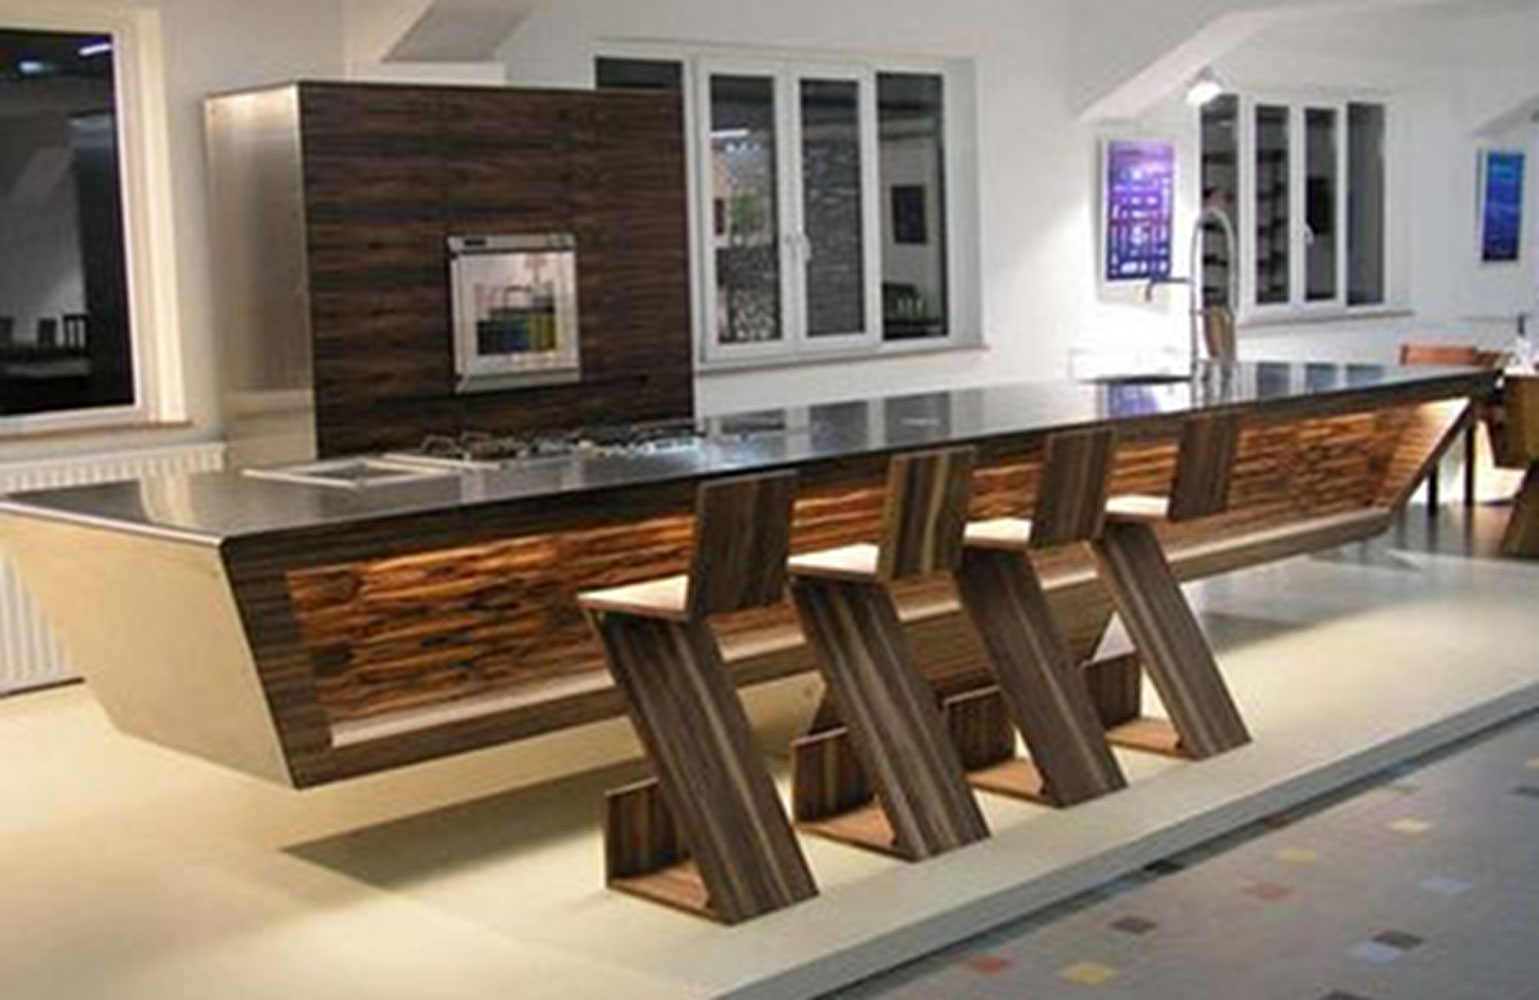 Metal wood a match made in interior design heaven for Modern kitchen interior design ideas